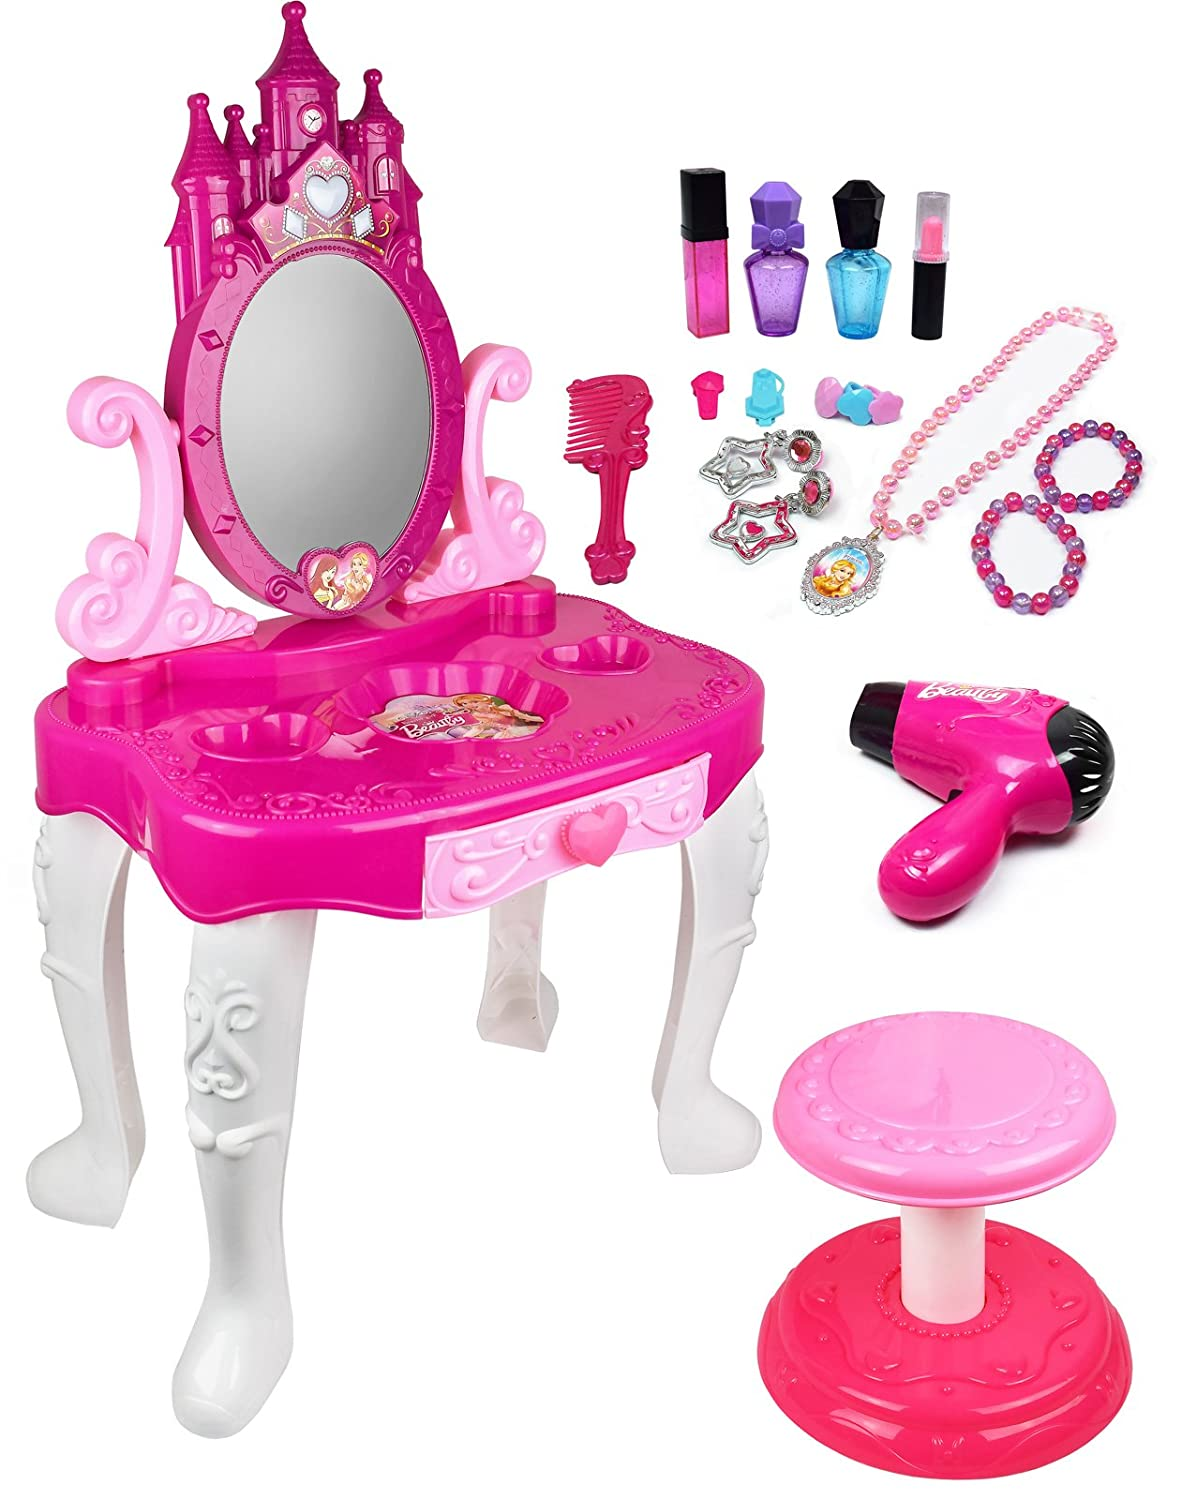 Amazon.com: Kiddie Play Pretend Play Kids Vanity Table And Chair Beauty  Play Set With Fashion U0026 Makeup Accessories For Girls: Toys U0026 Games